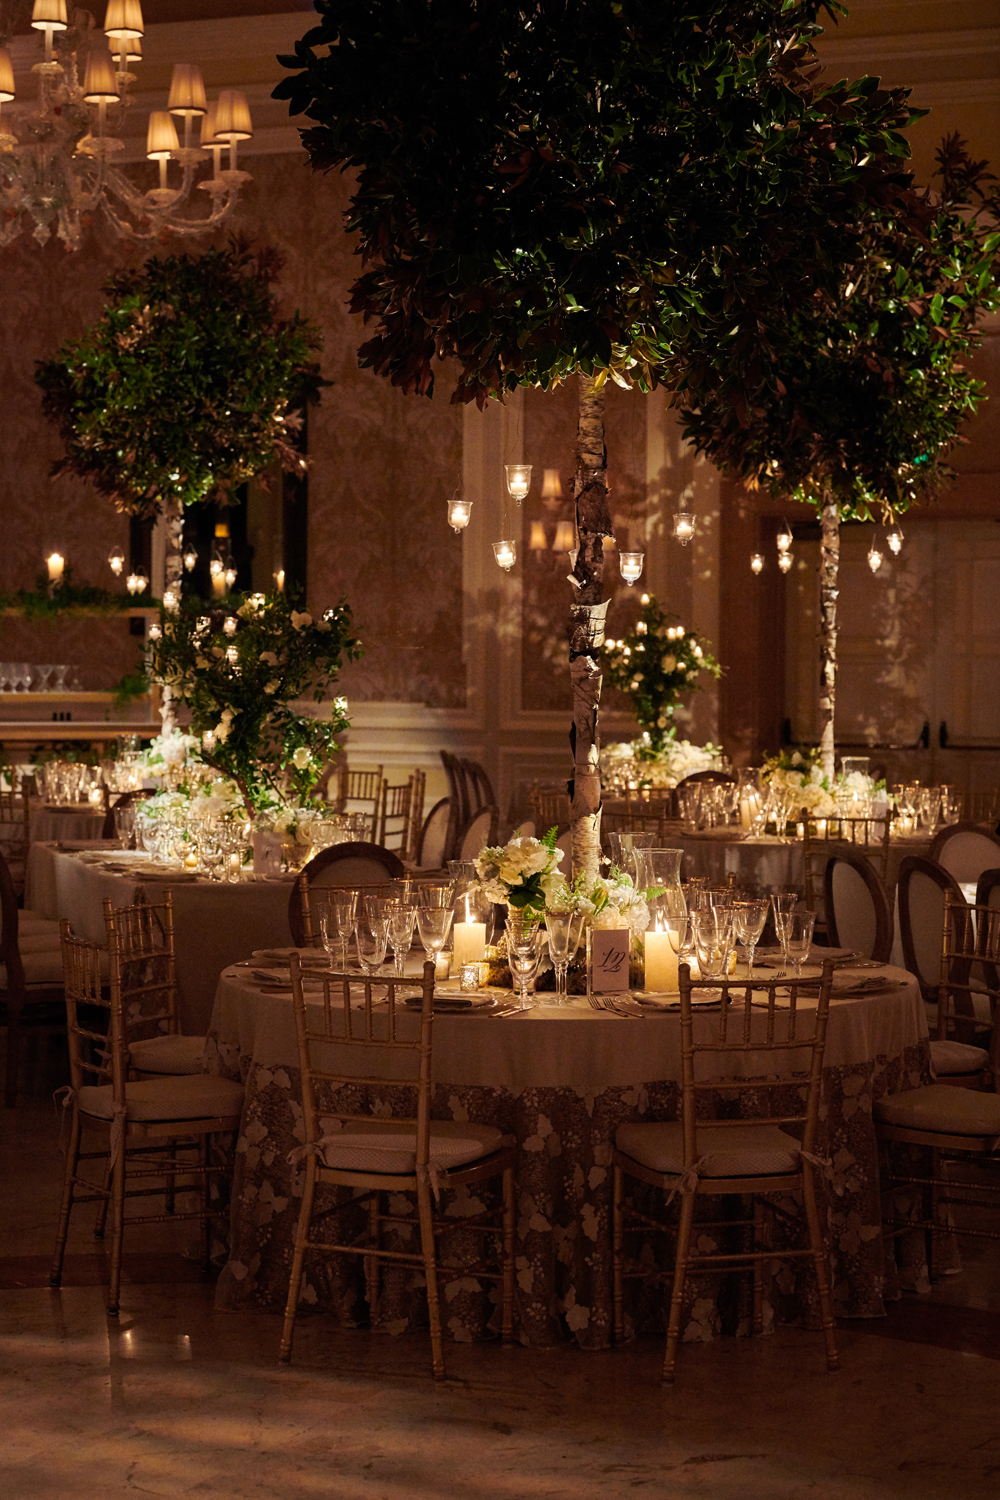 how to bring the outdoors in to your wedding, how to have a nature themed indoor wedding